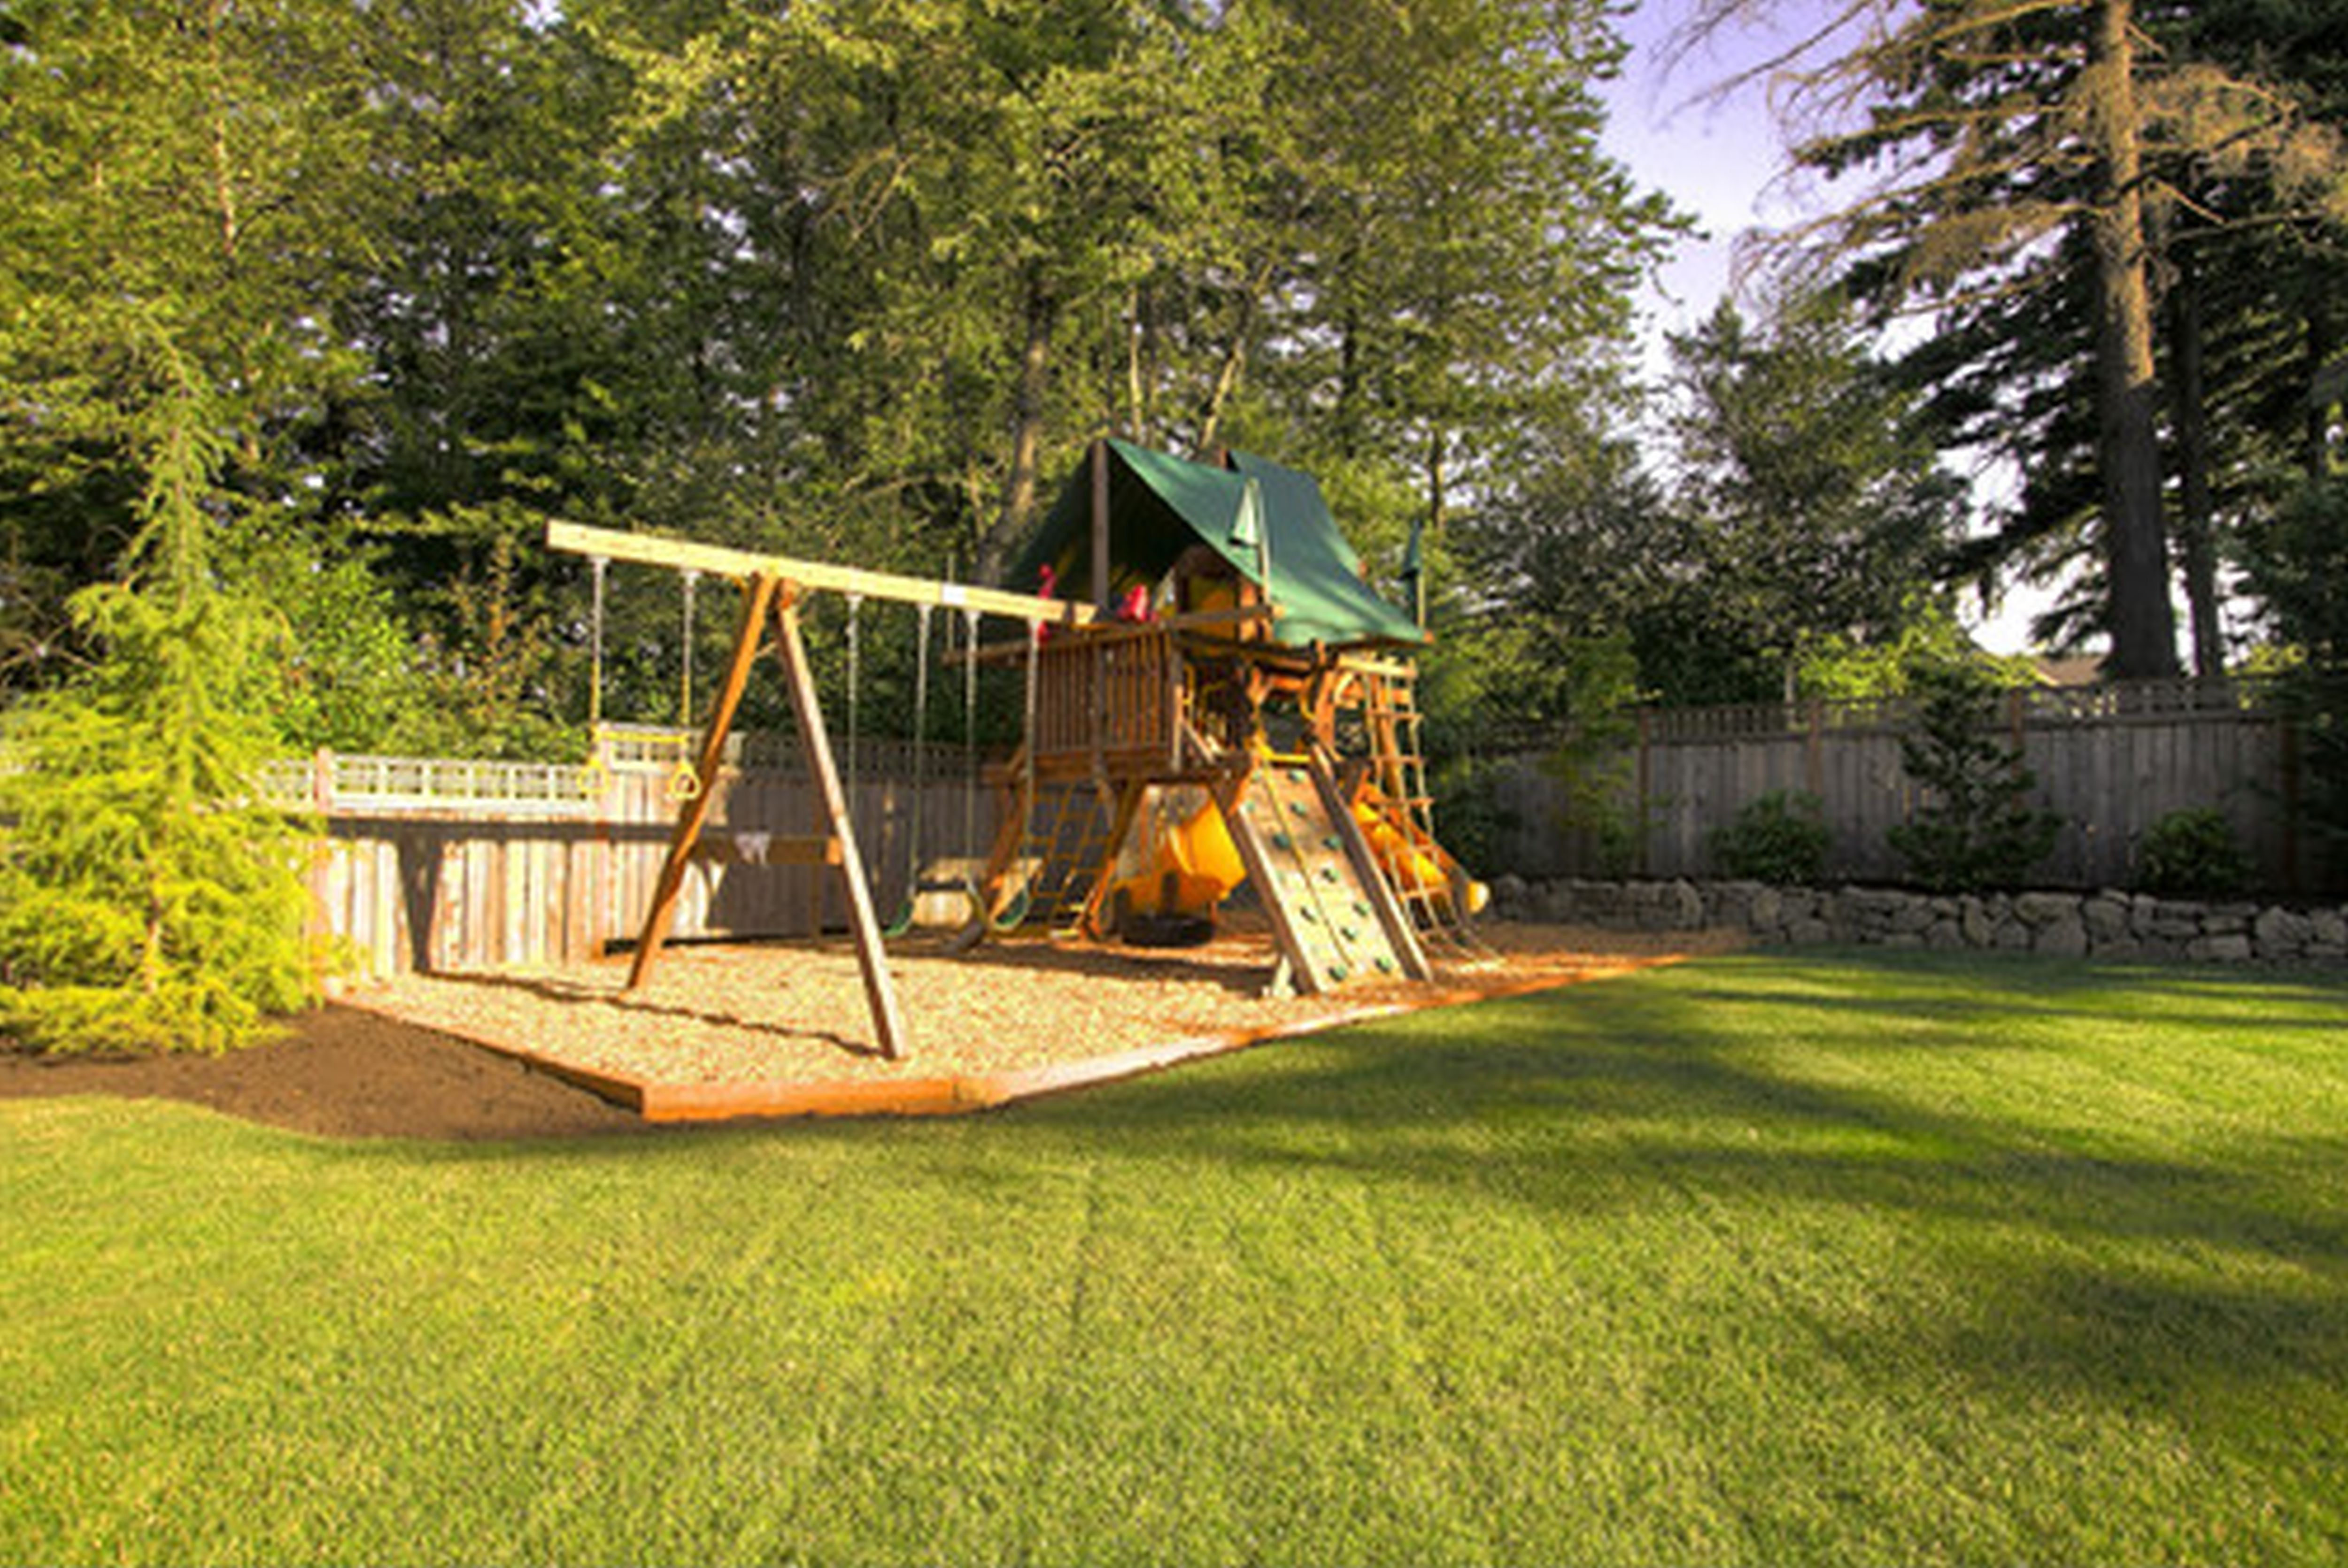 Alluring Backyard Ideas Style Excellent Great Backyard Designs Backyard Playground Large Backyard Landscaping Small Backyard Landscaping